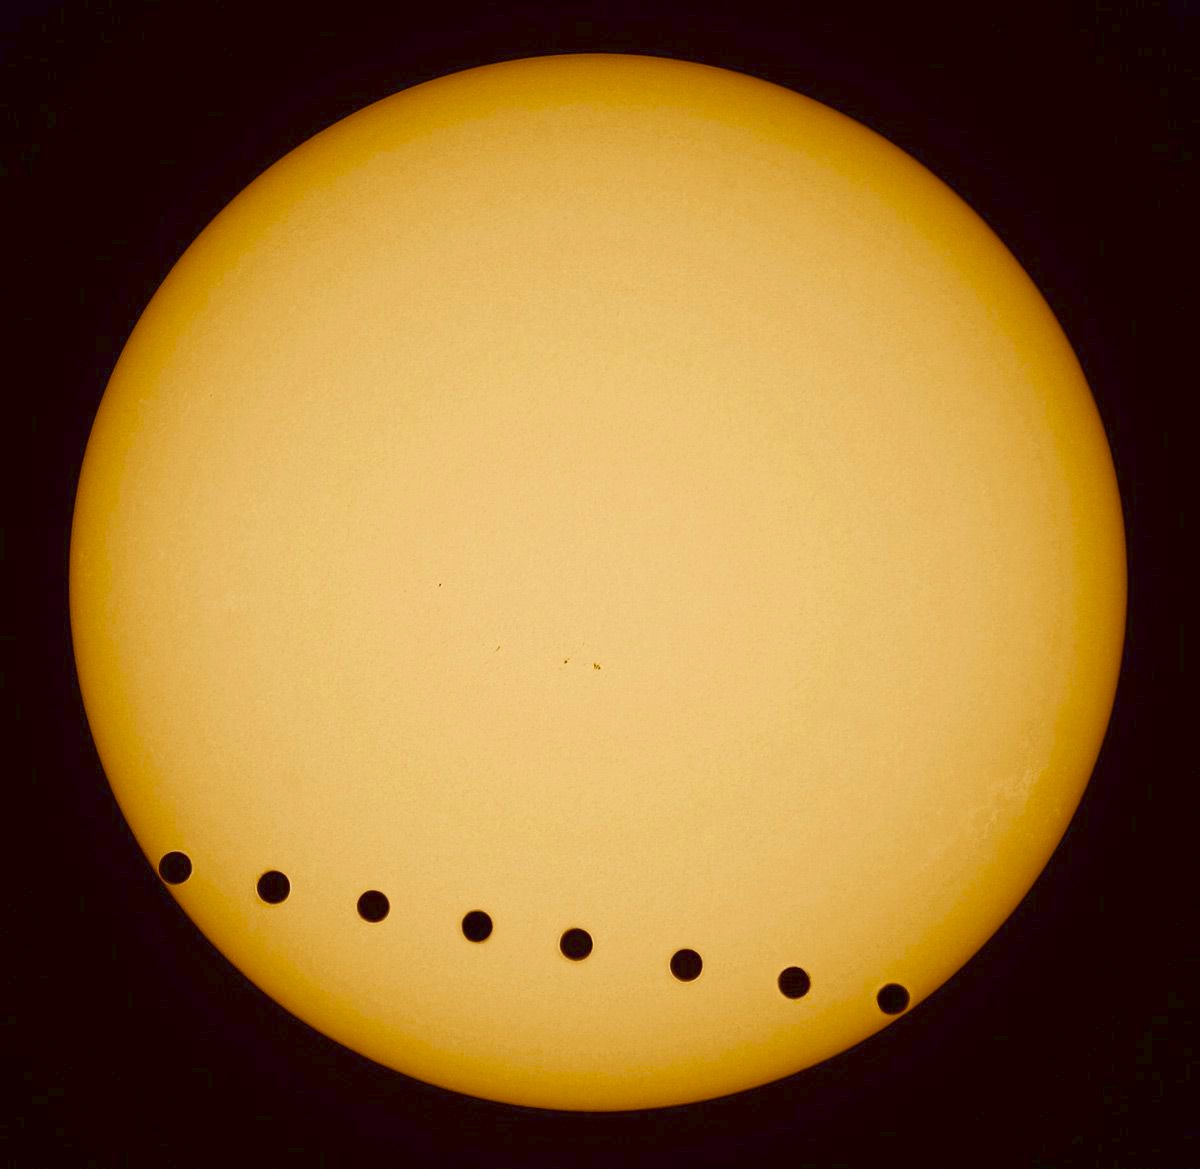 A transit of Venus took place in June 2004 and June 2012.